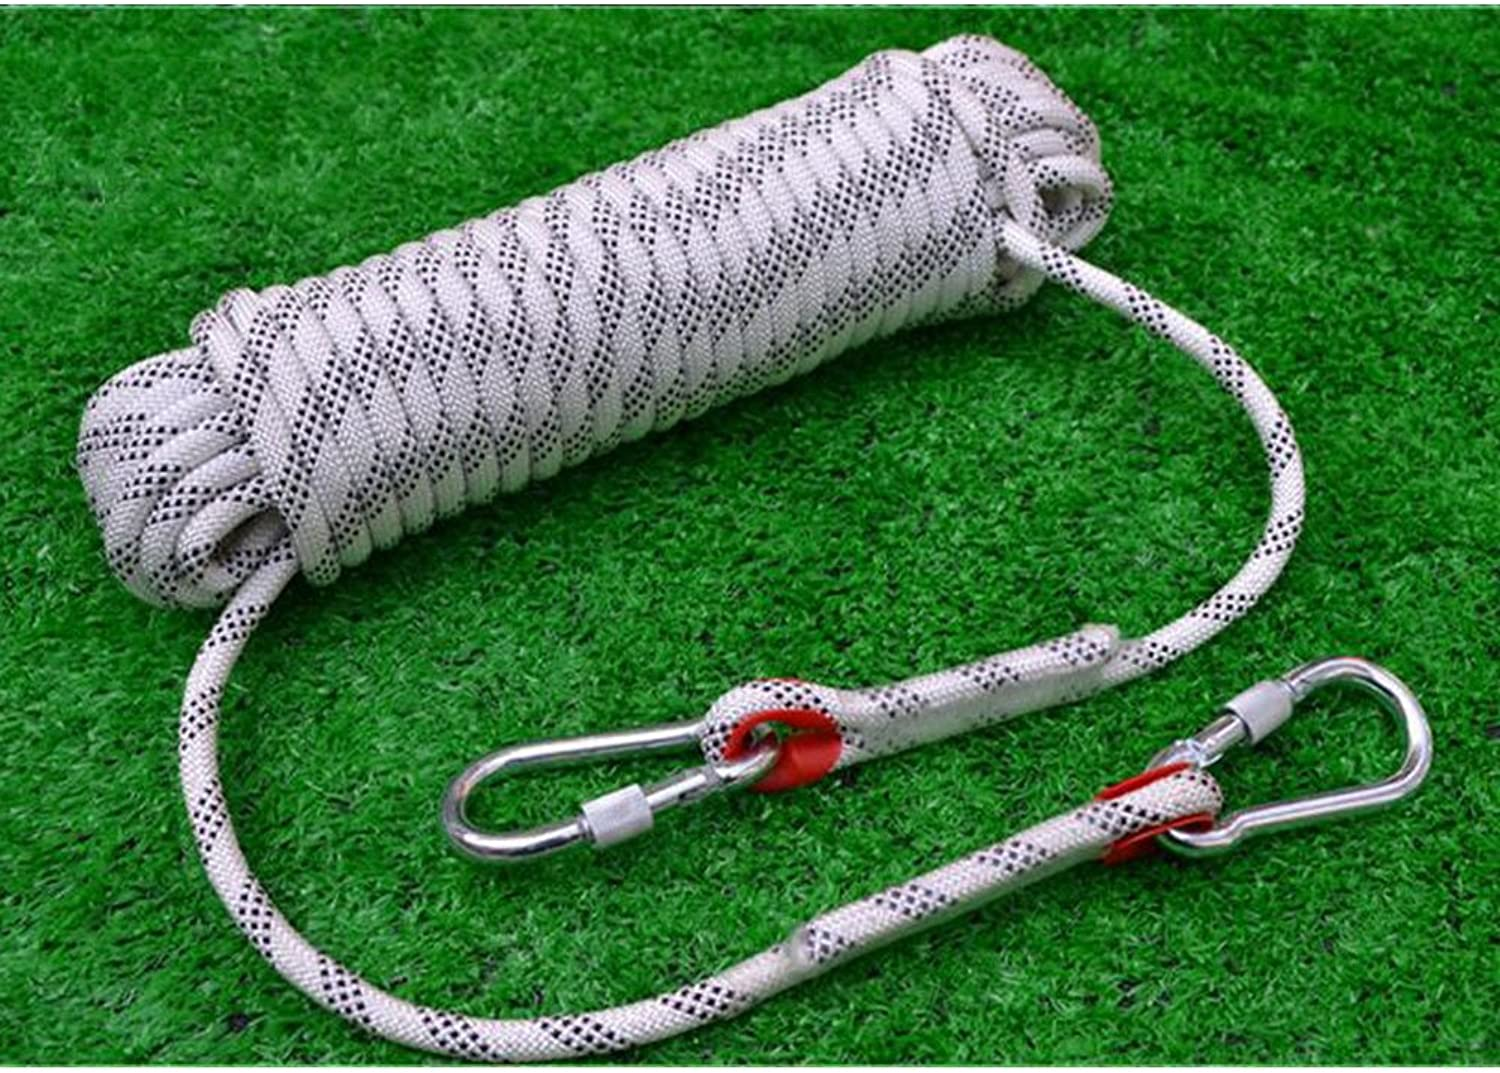 Rock Climbing Rope, Outdoor, Security, Mountaineering, Falling Down, Rescue Rope, Home Escape Rope, Static Rope,White15m16mm